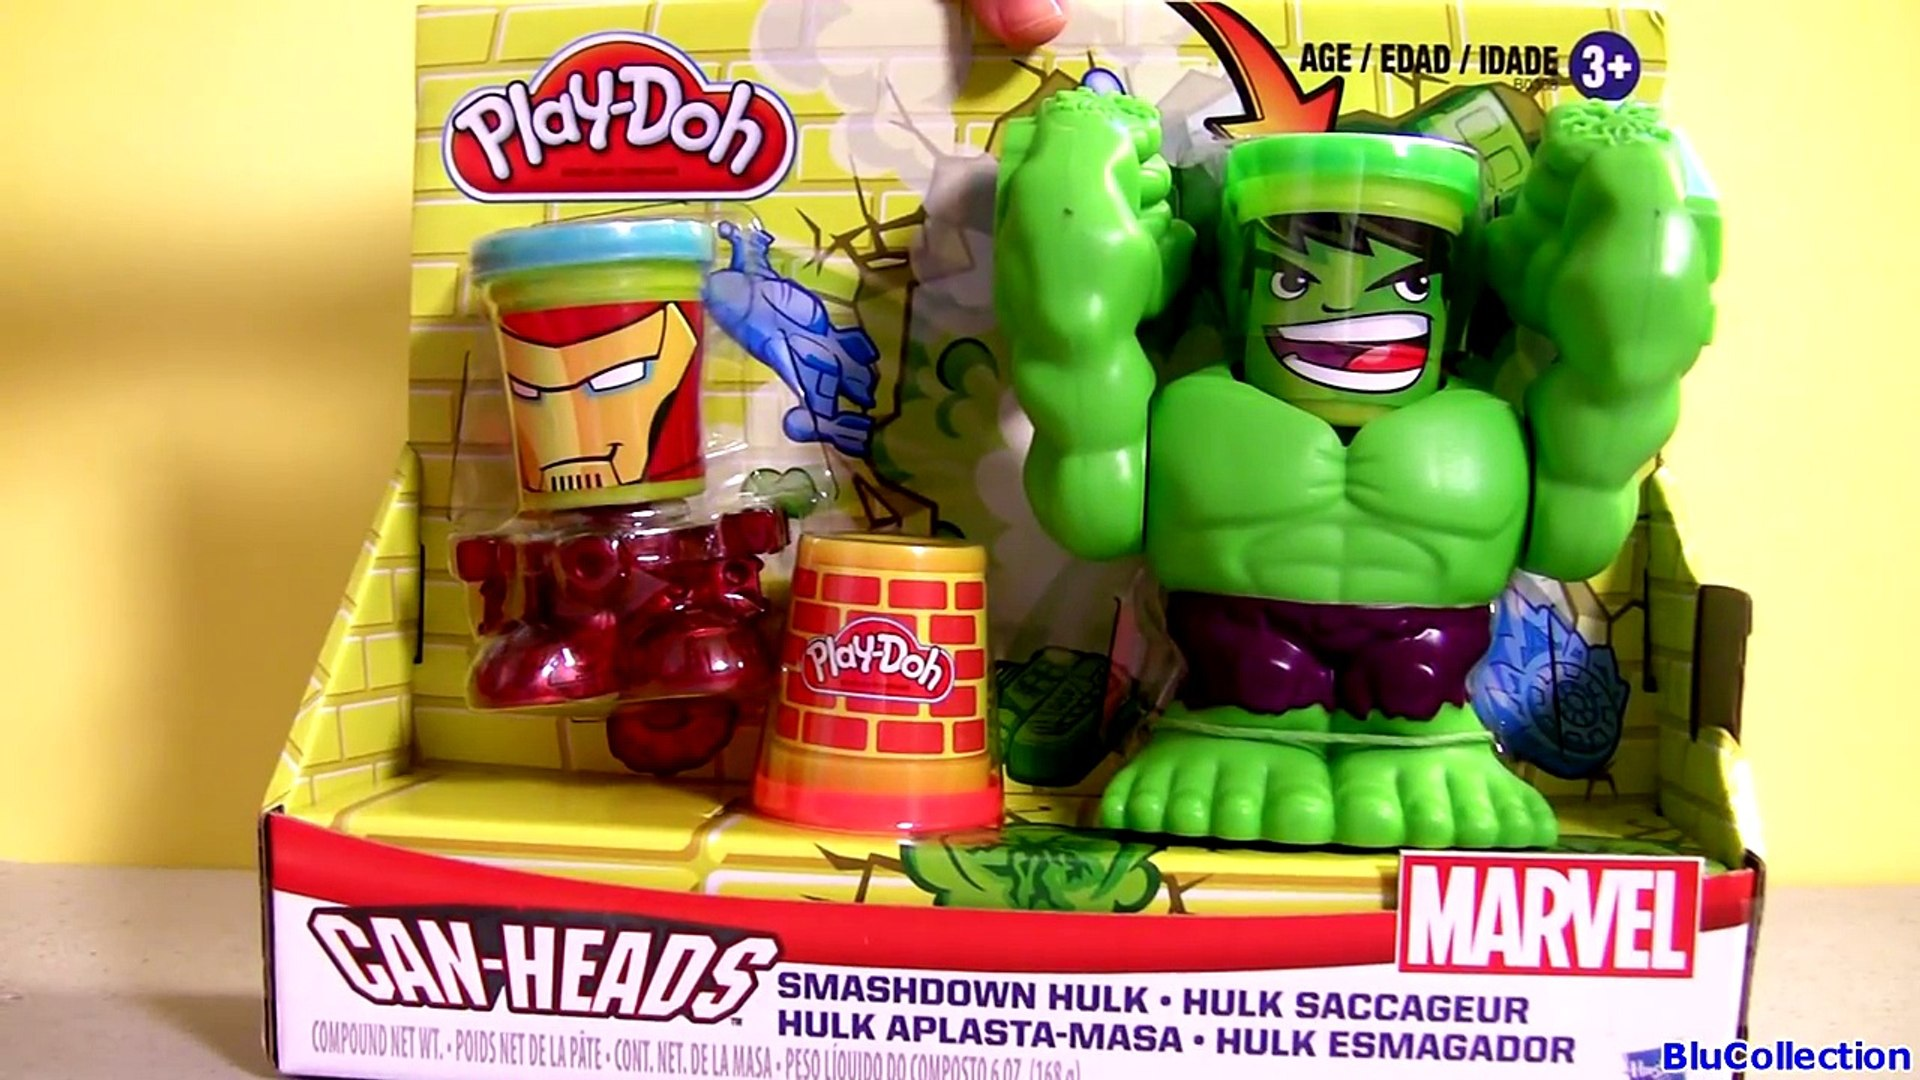 PLAY-DOH Marvel Smashdown Can-Heads featuring Hulk Figure